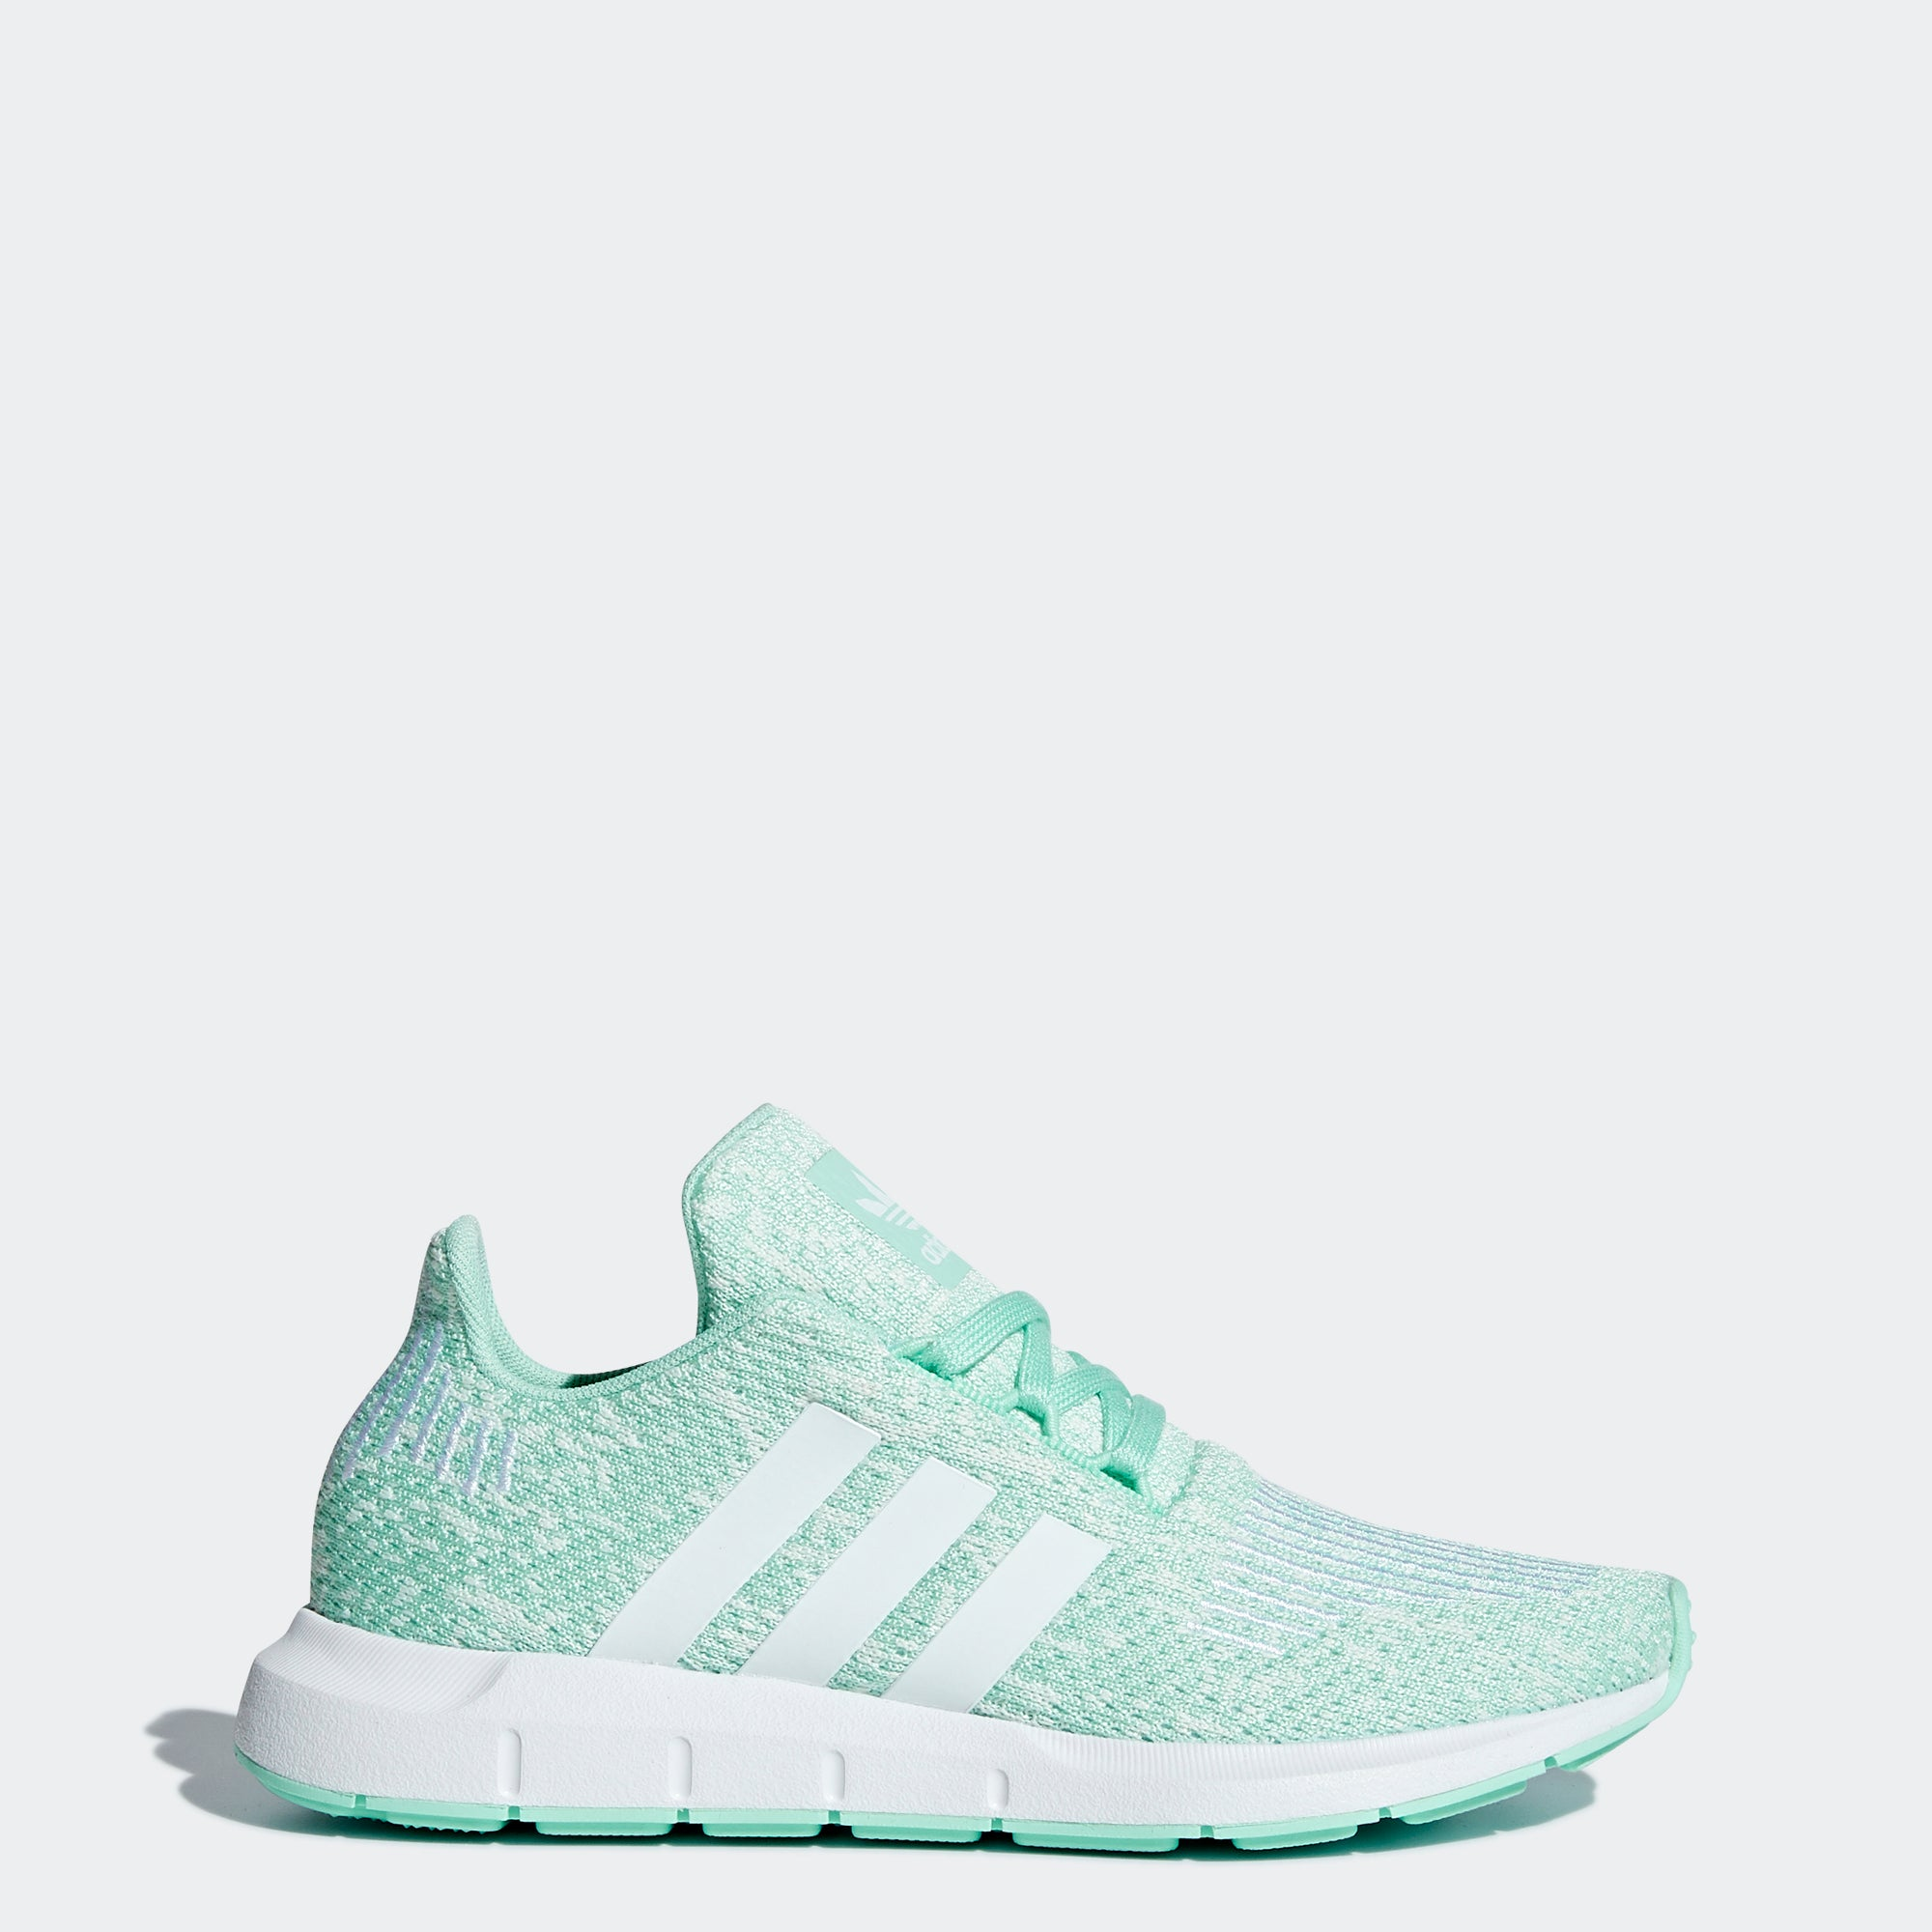 premium selection d7517 87e52 adidas Swift Run Shoes Clear Mint B37119 | Chicago City Sports